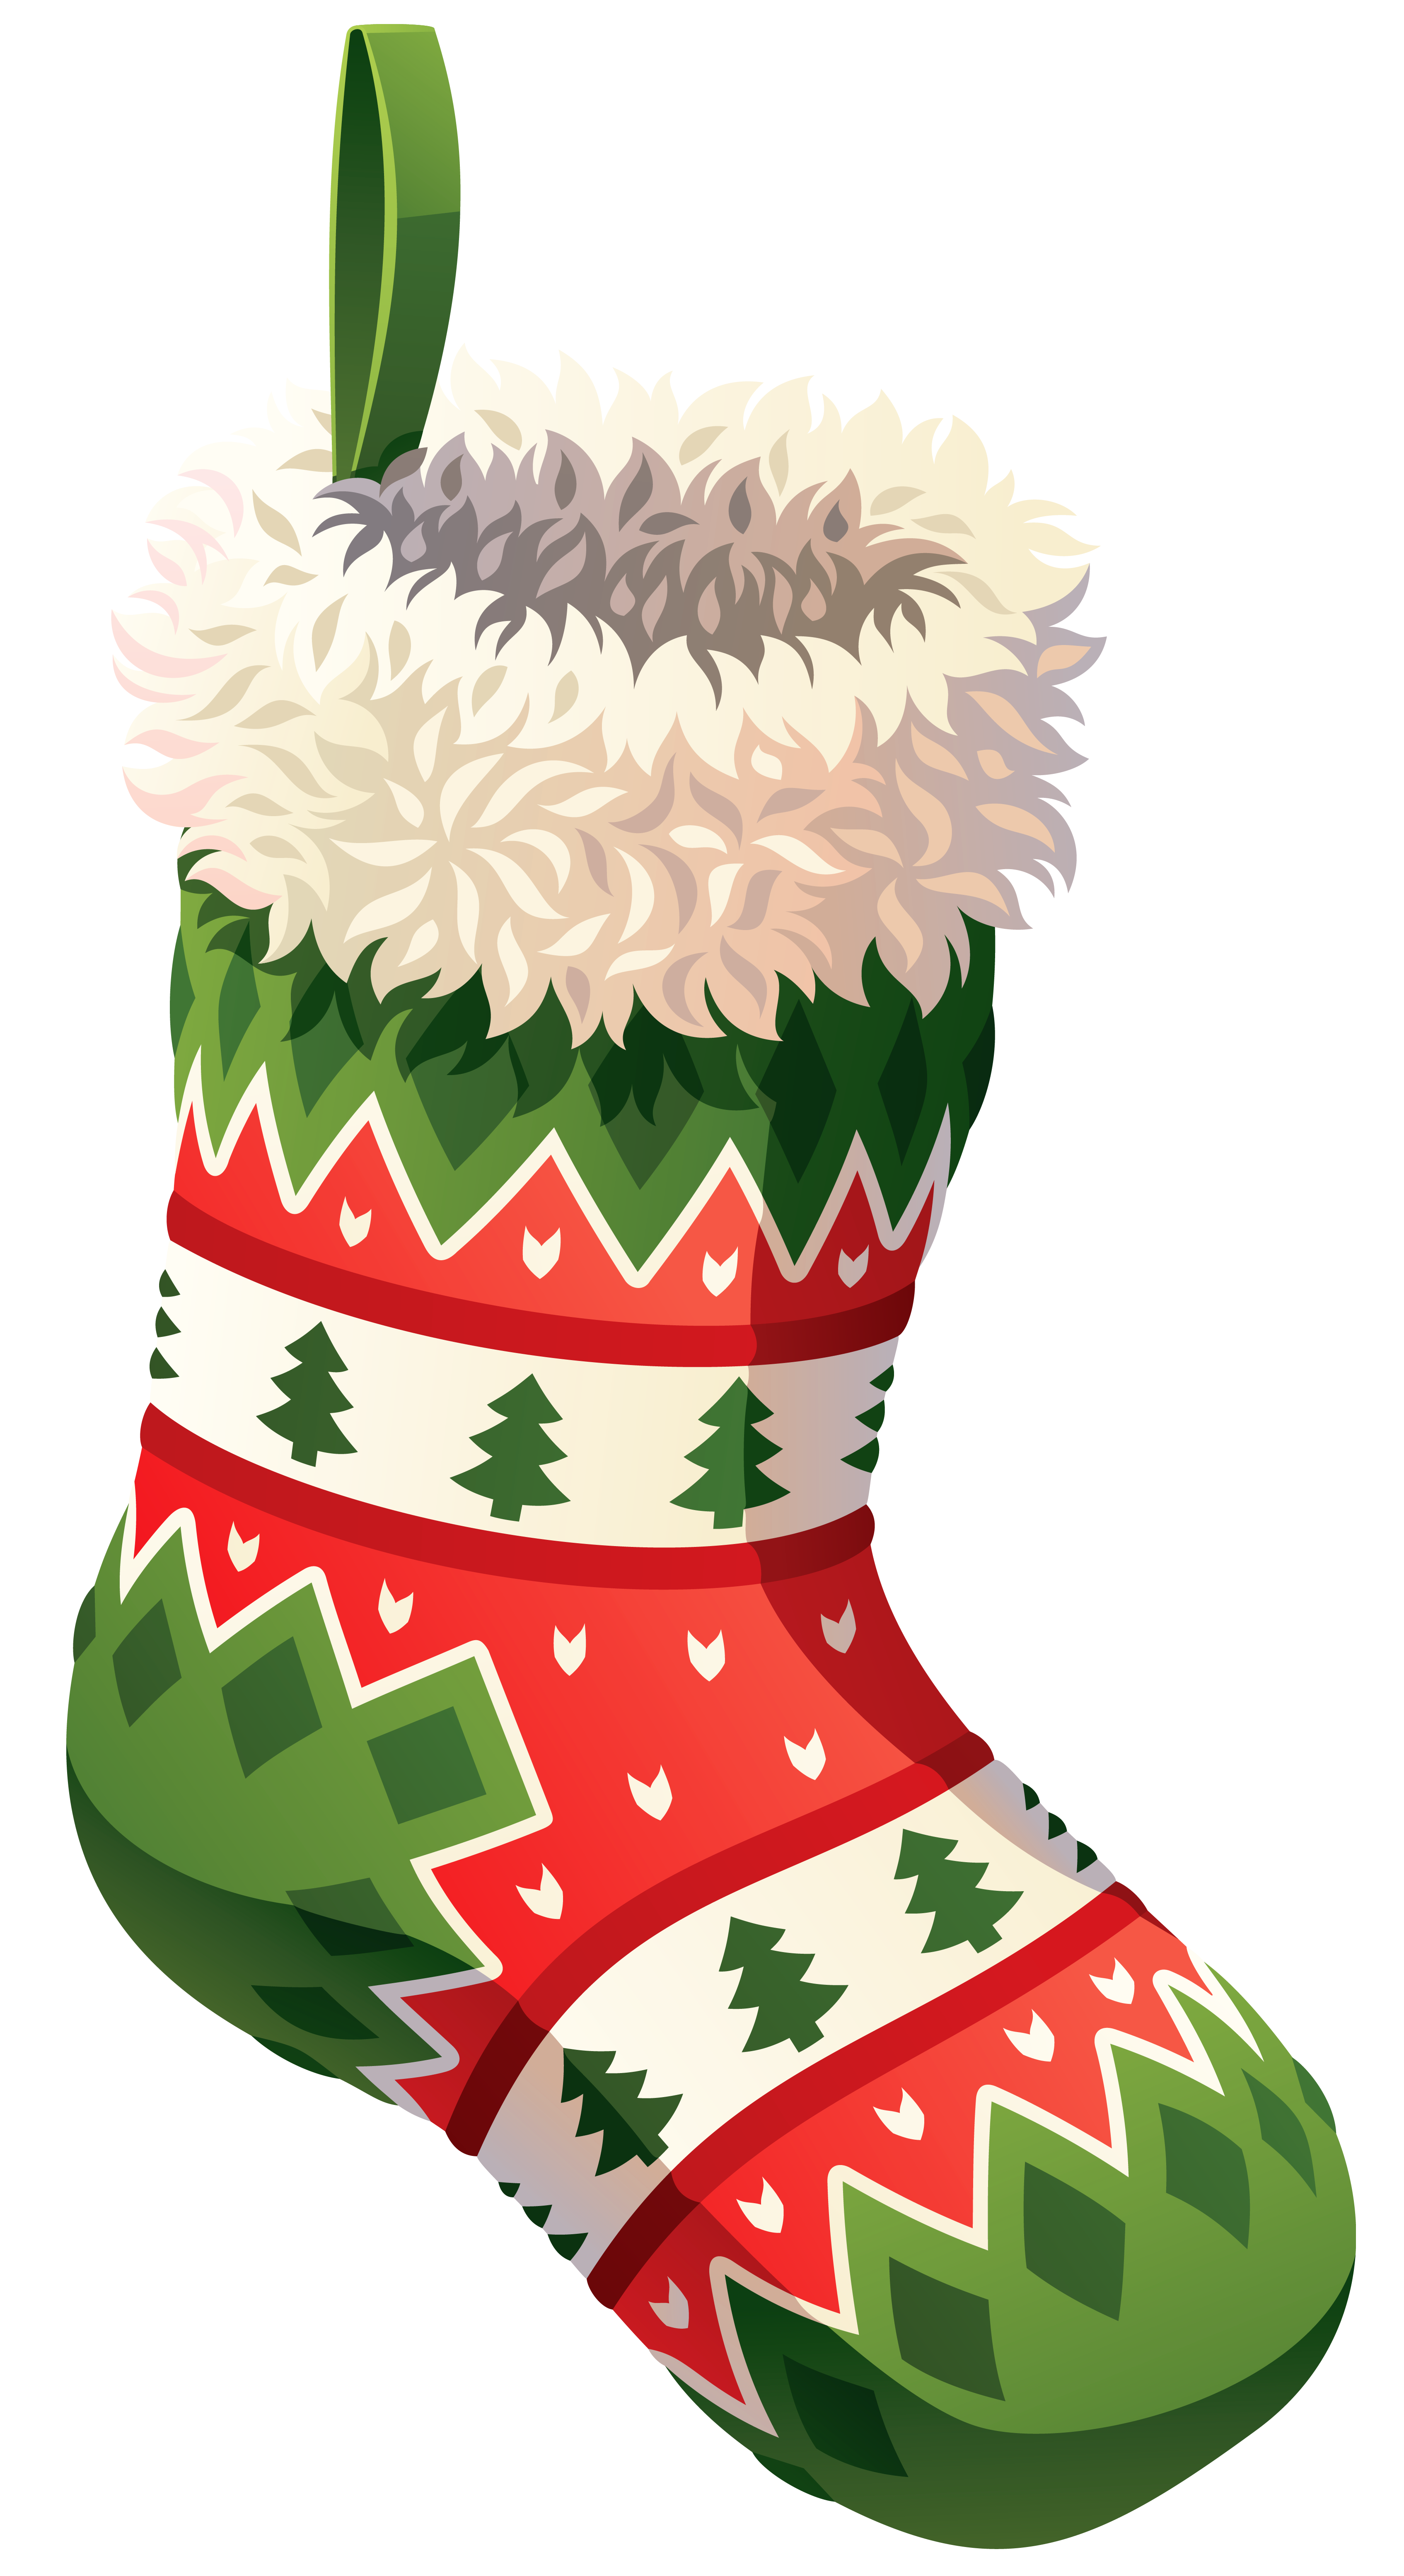 graphic transparent stock Christmas free download clip. Stockings clipart.